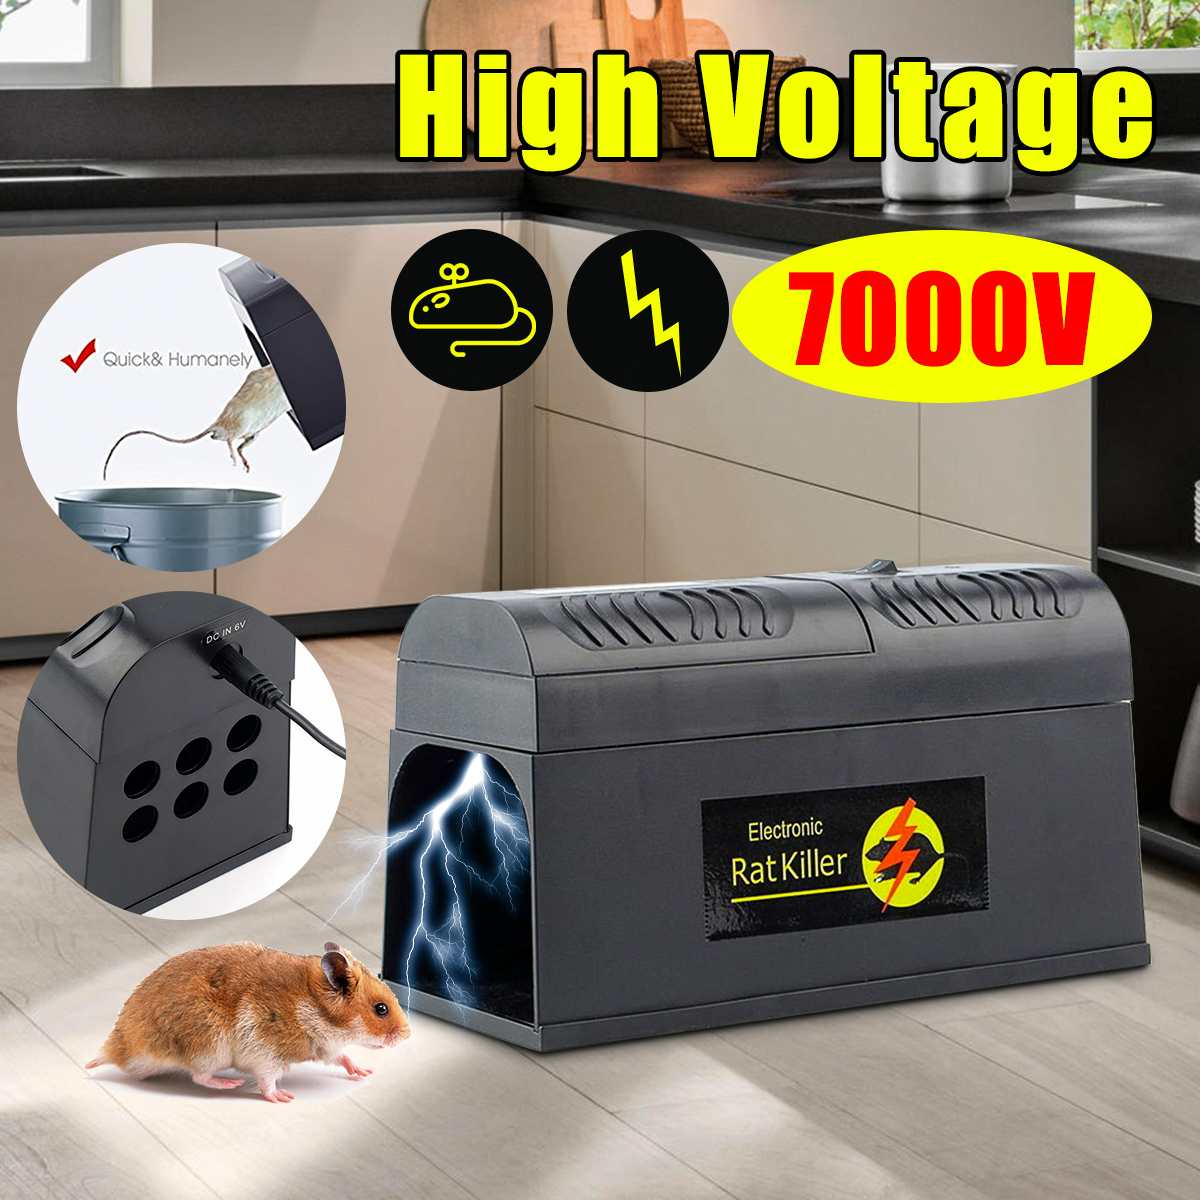 US/UK/EU Plug Electric High Voltage Mouse Rat Trap Mouse Killer Electronic Rodent Mouse Zapper Home Use Pest Control